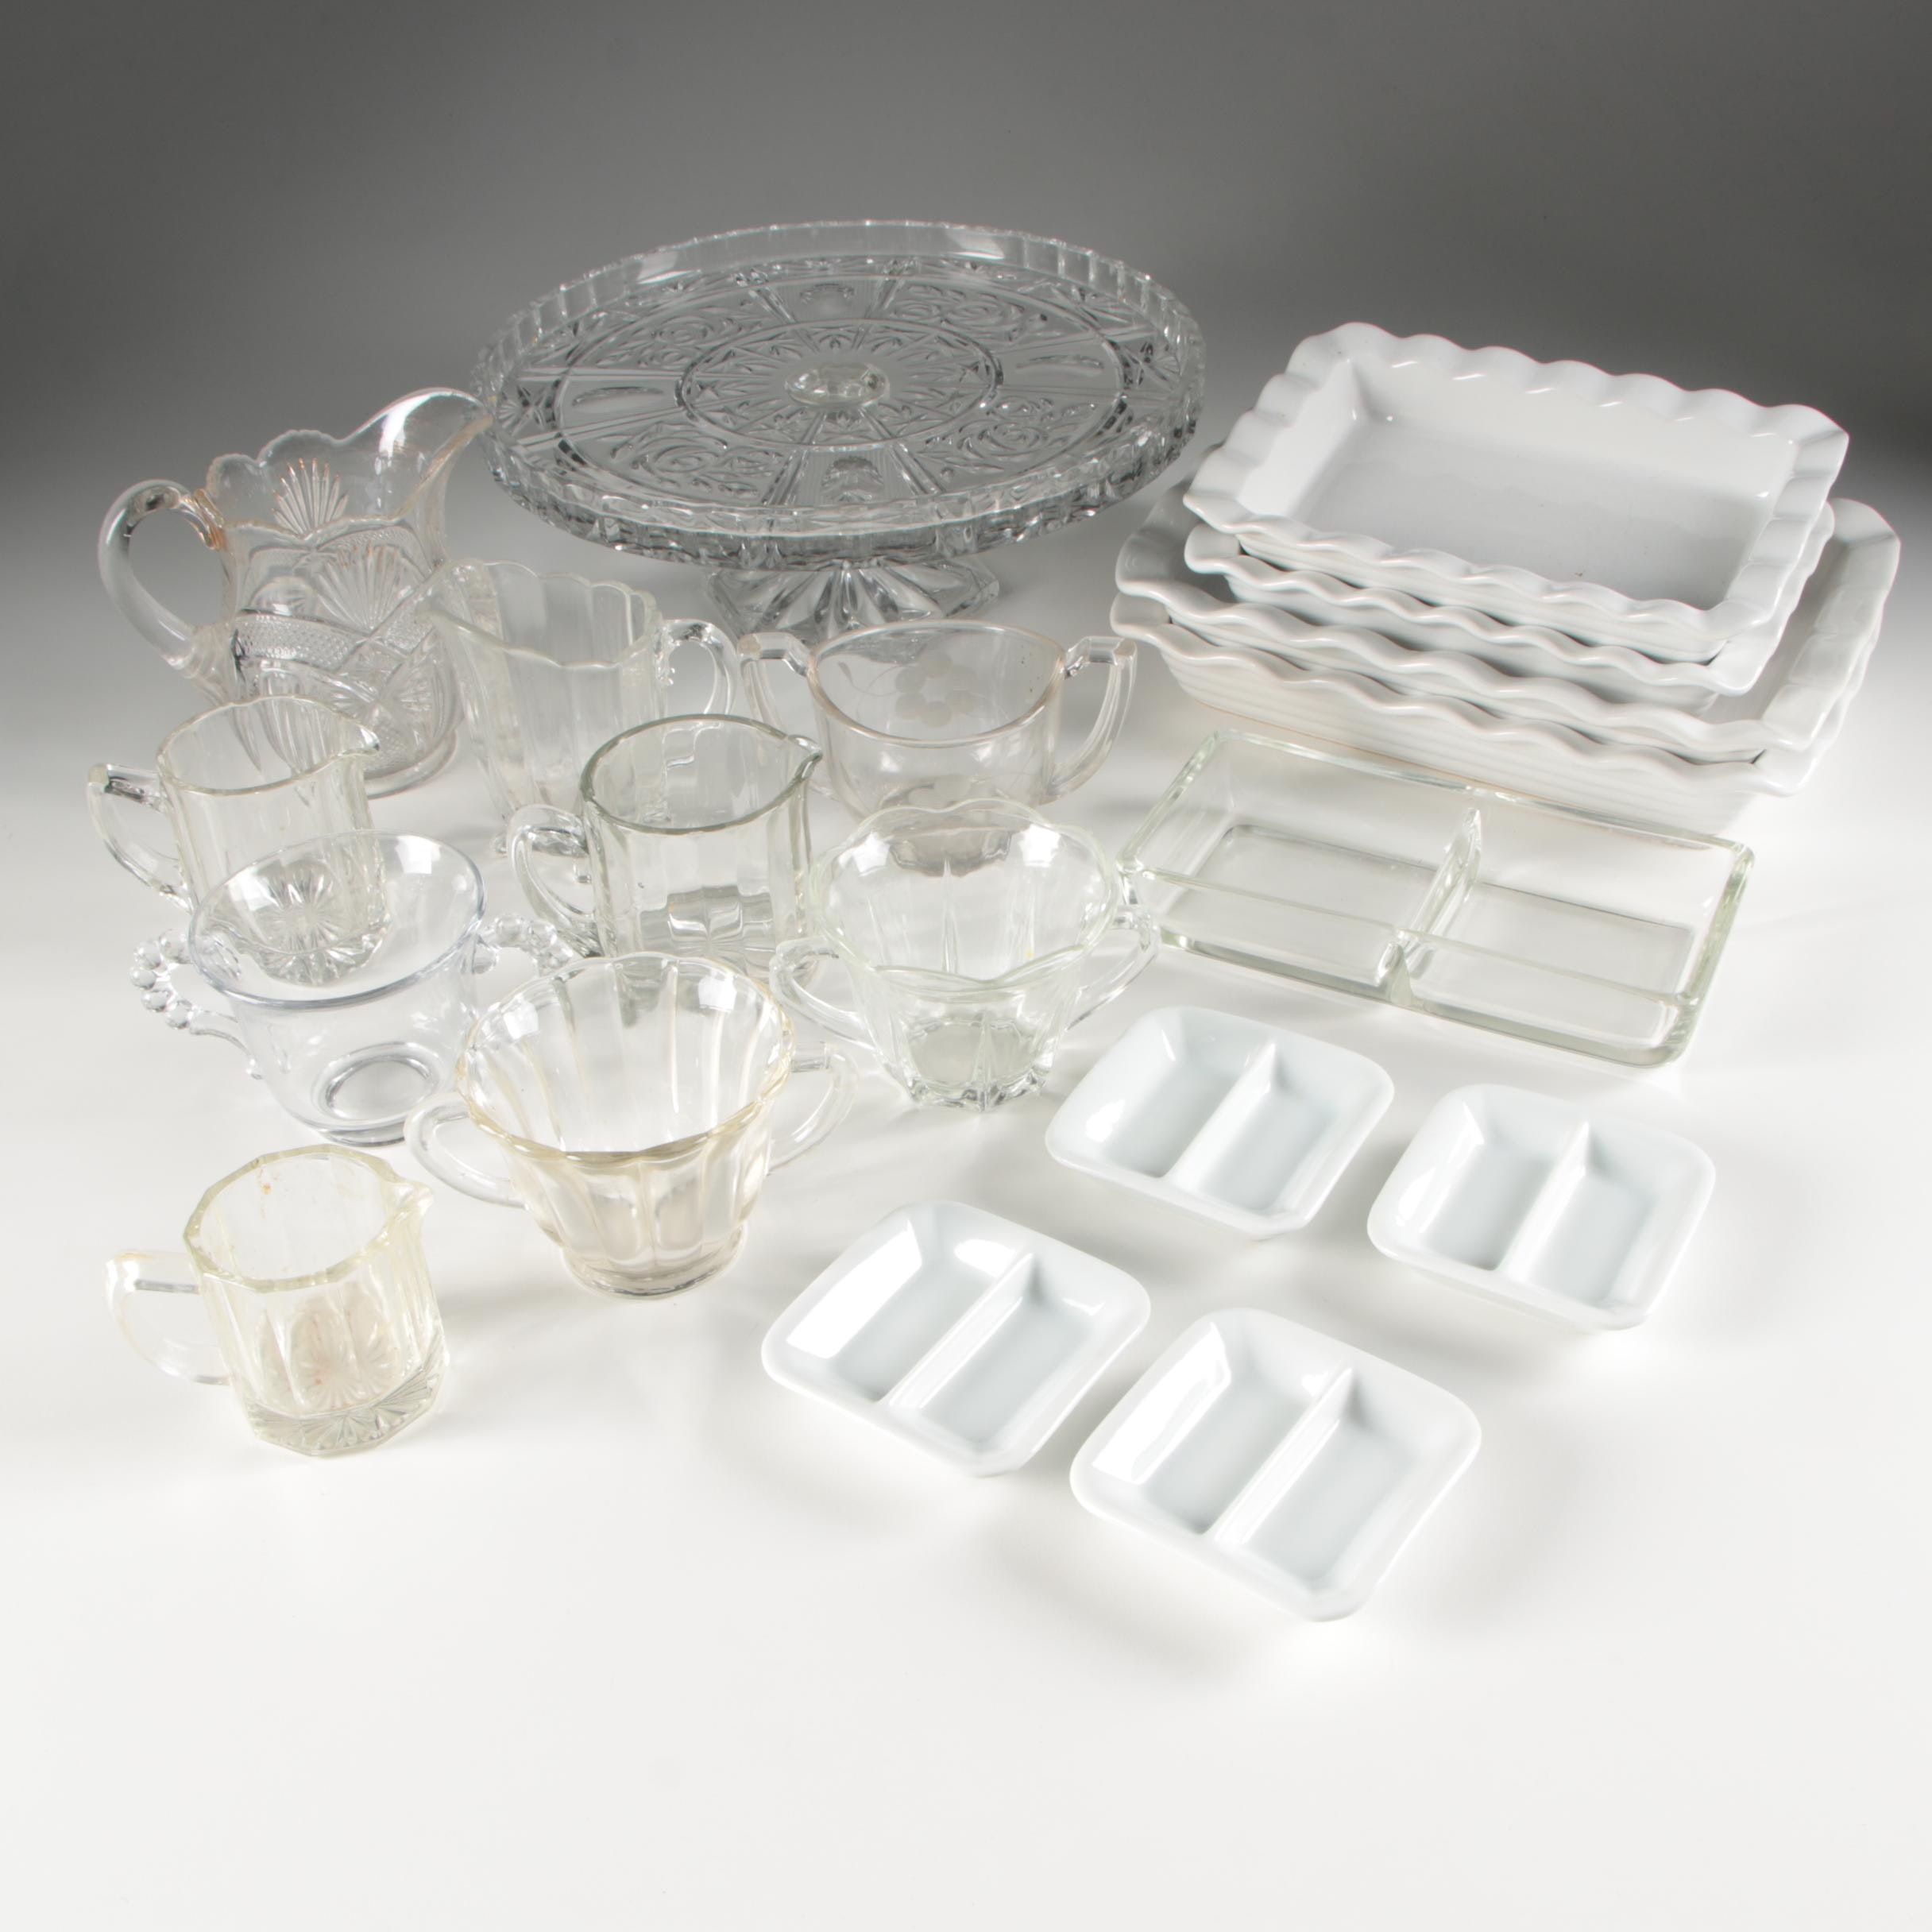 Ceramic Serving Trays, Cake Stand, and a Collection of Glass Creamers and Sugars